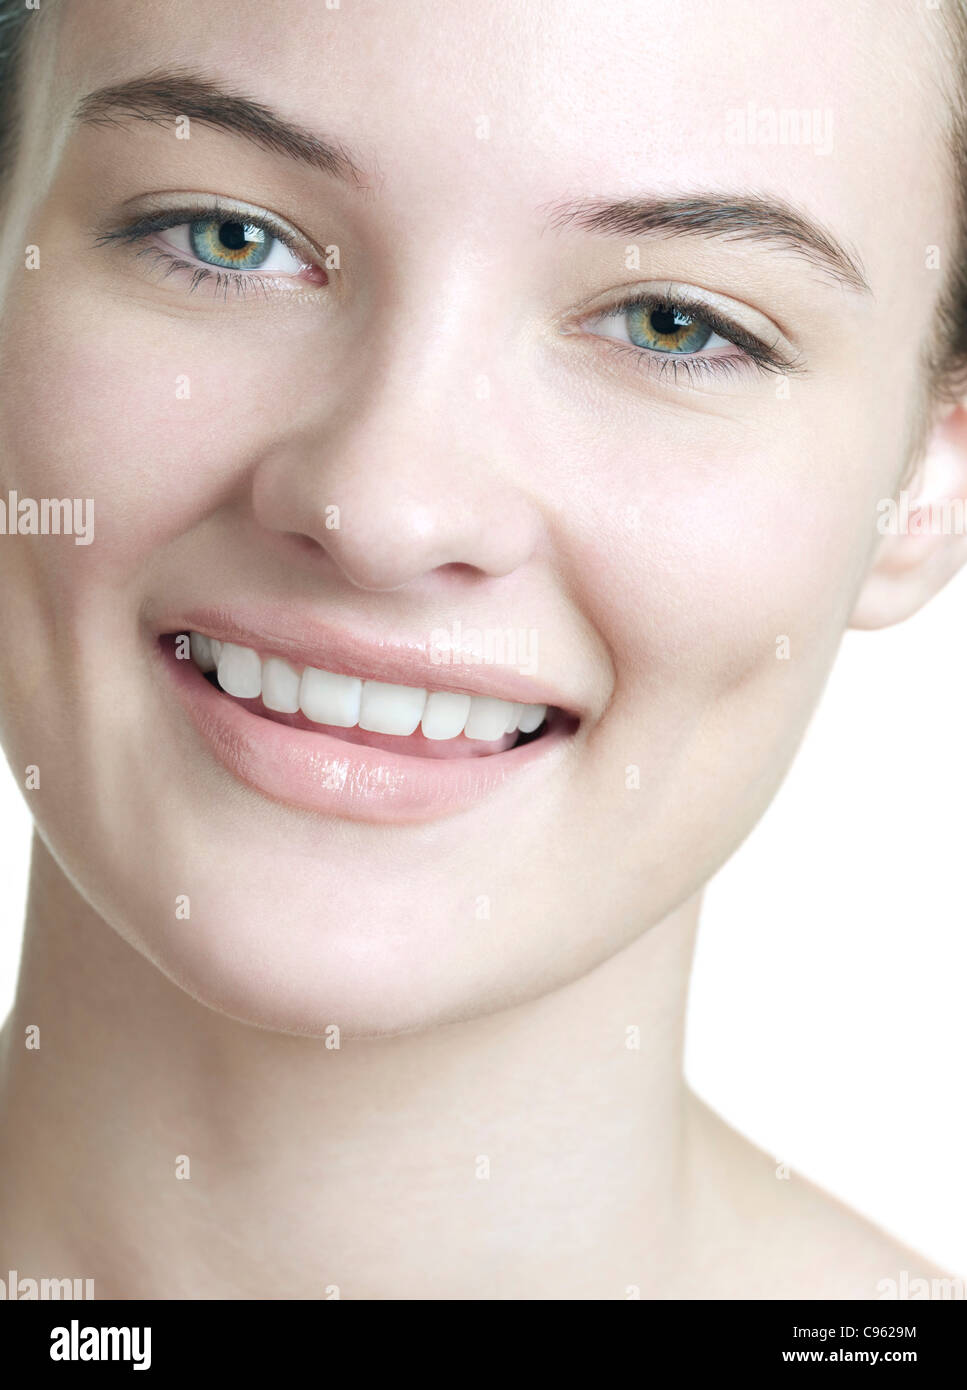 Happy young woman. - Stock Image